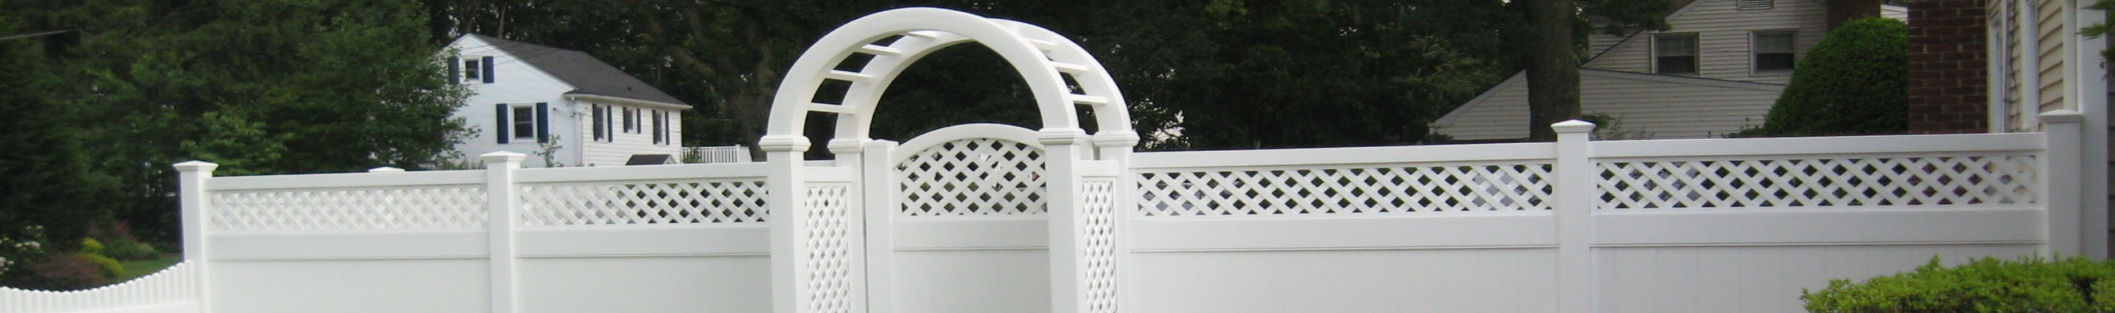 Country Estate Vinyl Fences and Outdoor Products in Tuttle, OK